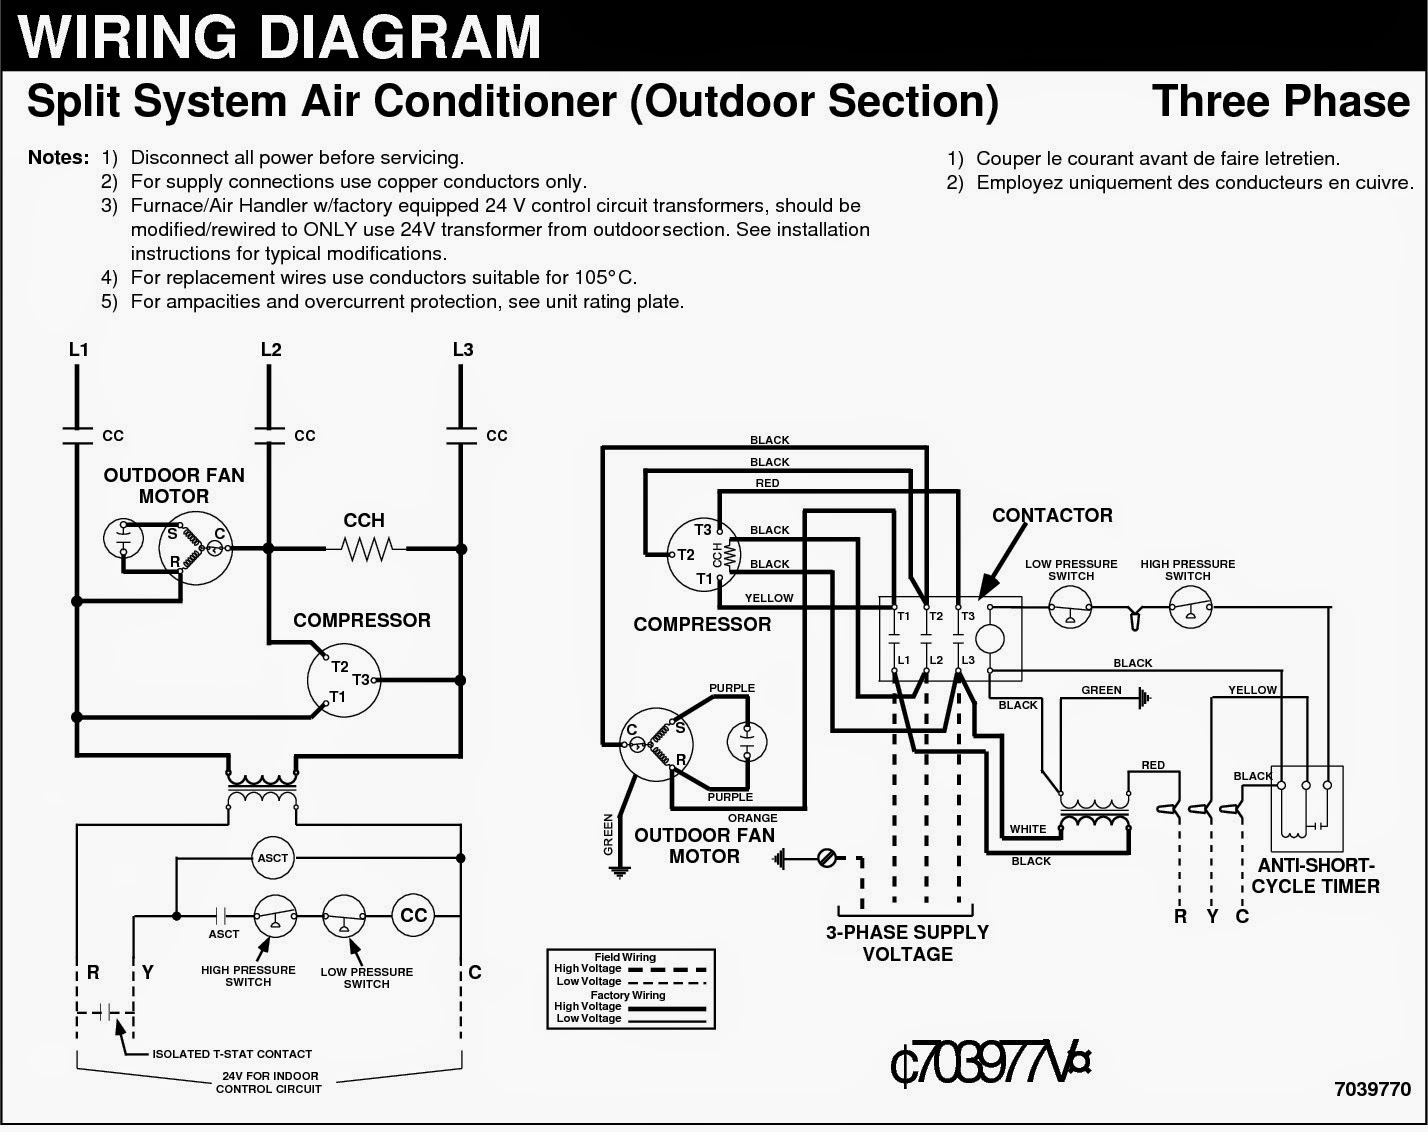 3+phase electrical wiring diagrams for air conditioning systems part two car ac wiring diagram at bayanpartner.co